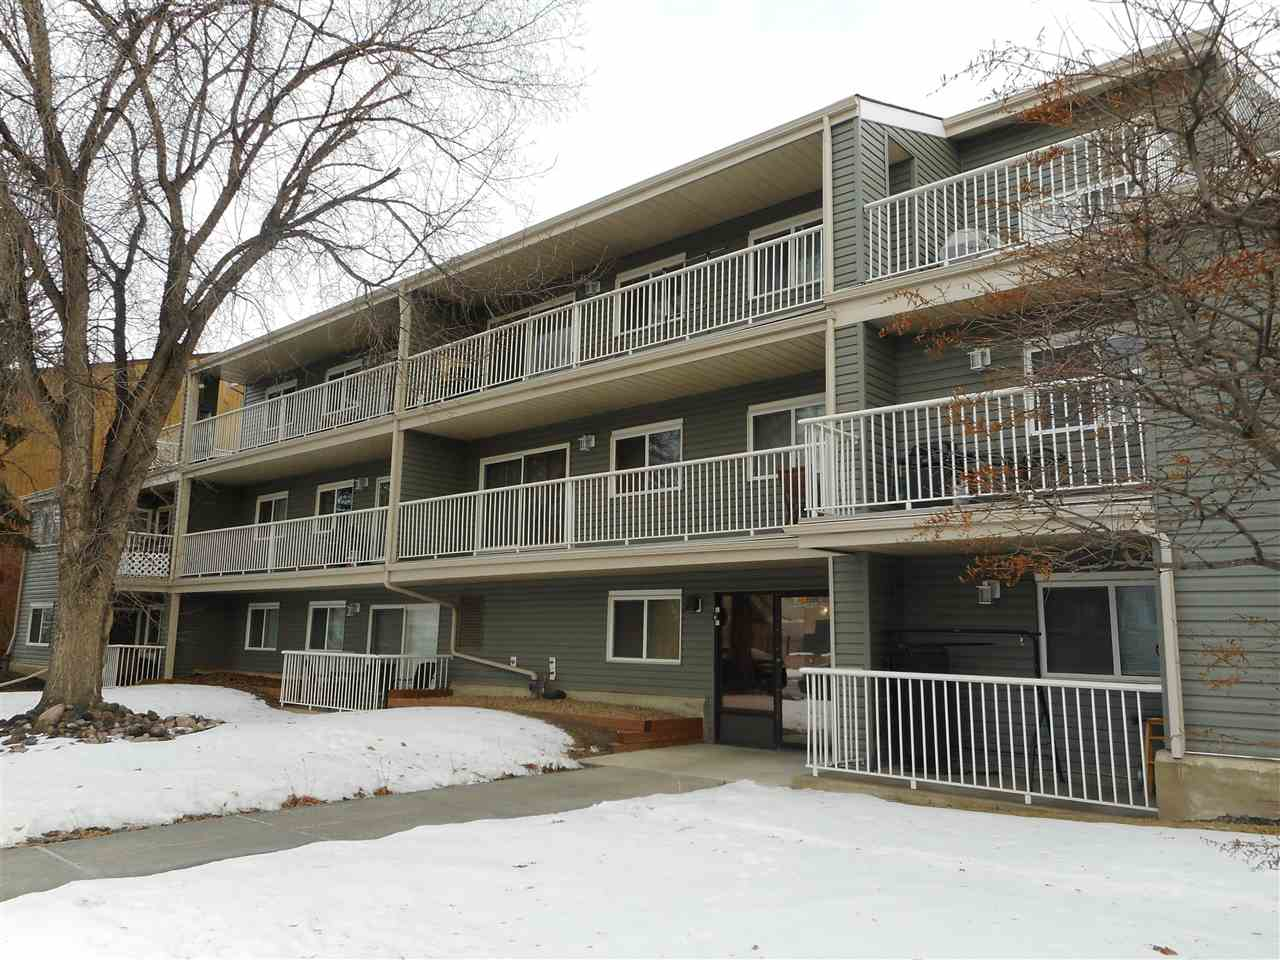 Well maintained 1 bedroom Condo for sale in Britannia Youngstown. This unit has a large balcony,in suite extra storage room,walk-in close in the bedroom.No smoking unit,smalll pets OK with condo board approval.Spacious rooms with lots of natural light coming thru big windows and sliding door.Ideal for students,young proffessionals or investors.Close to public tramsportaion(also new LRT in the future)Valley Line is planned,schools,playgrounds and shopping.Very well maintained,professionally managed building.Now rented at 825,current lease is the end of July 2021.Very Affordable 1 bedroom condo..Energized Parking..All utilities (accept power) included in condo fee..Excellent location amenities close by.Building is well maintained with some upgrades..Mortgage payment could be less than renting..